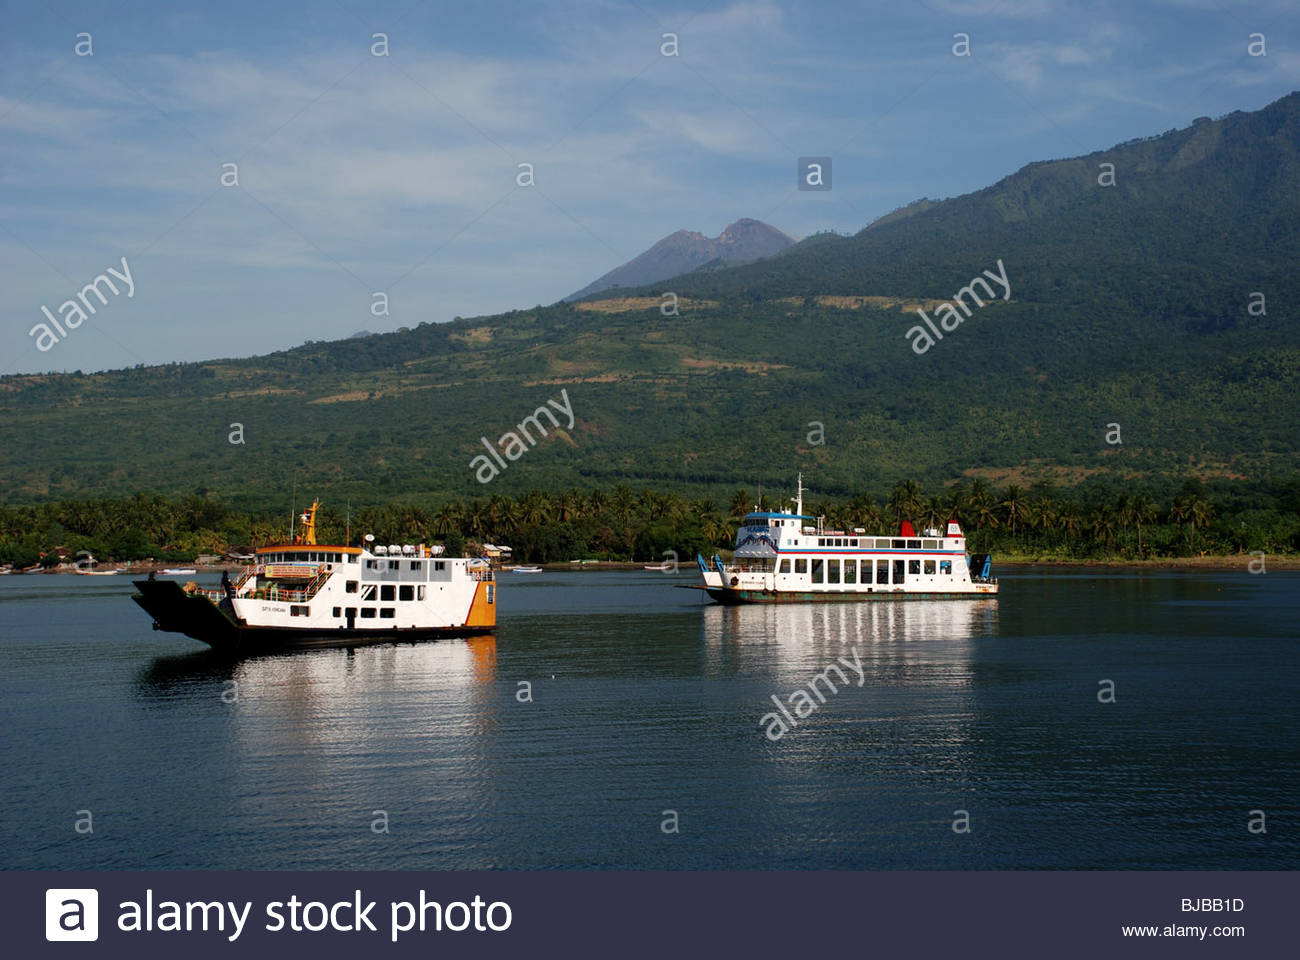 Two ferryboats in harbour with Gunung Rinjani volcano in background Kayangan Labuan Lombok Lombok Timur NTB Indonesia - Stock Image